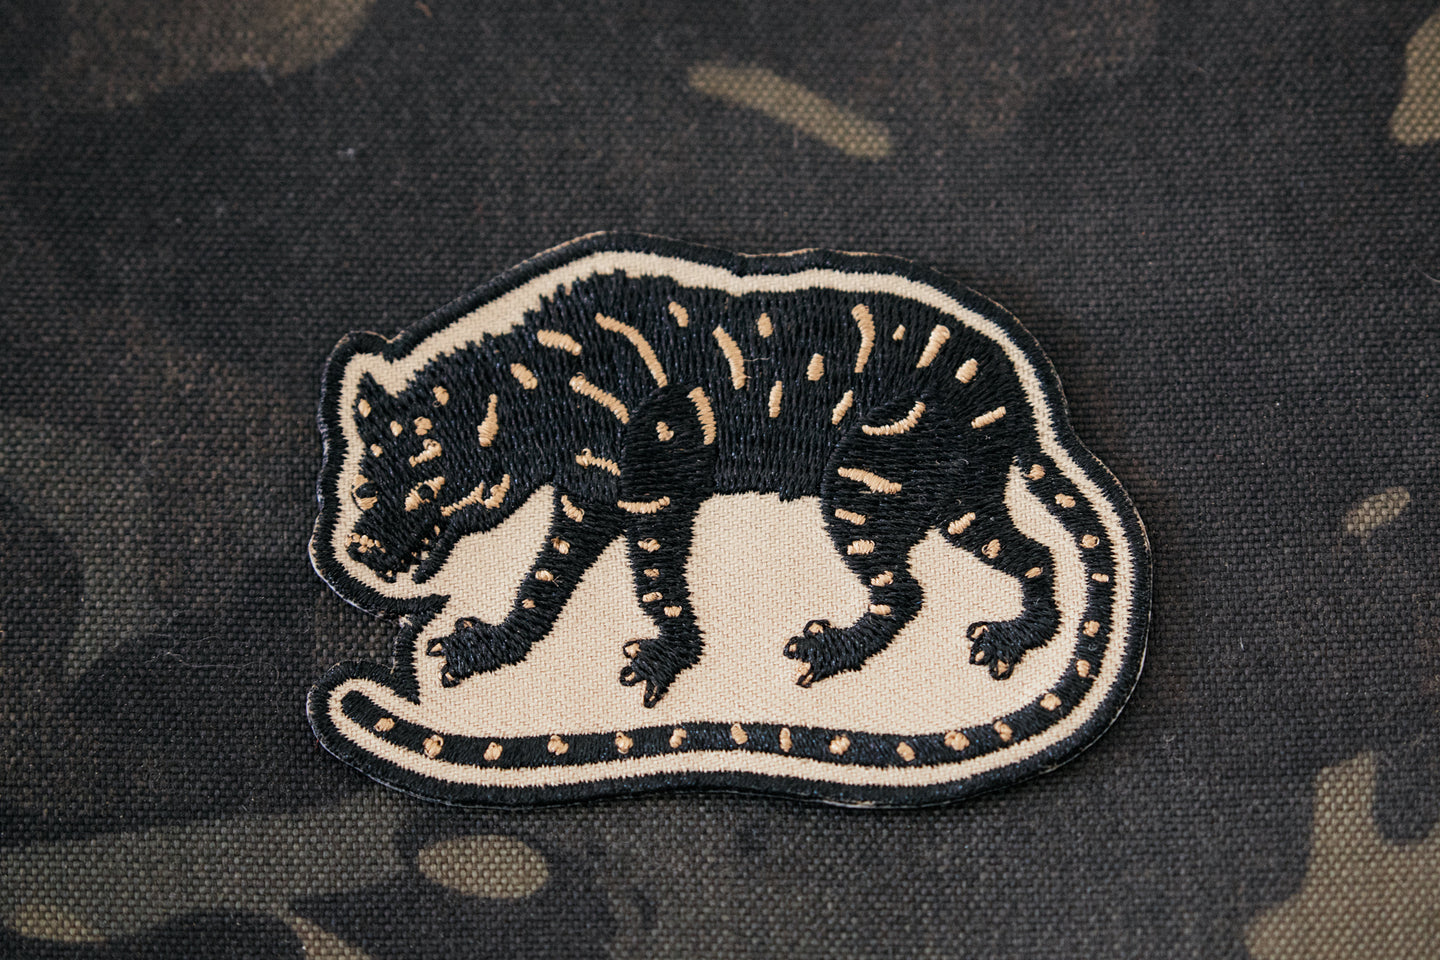 Desert Rat Patches